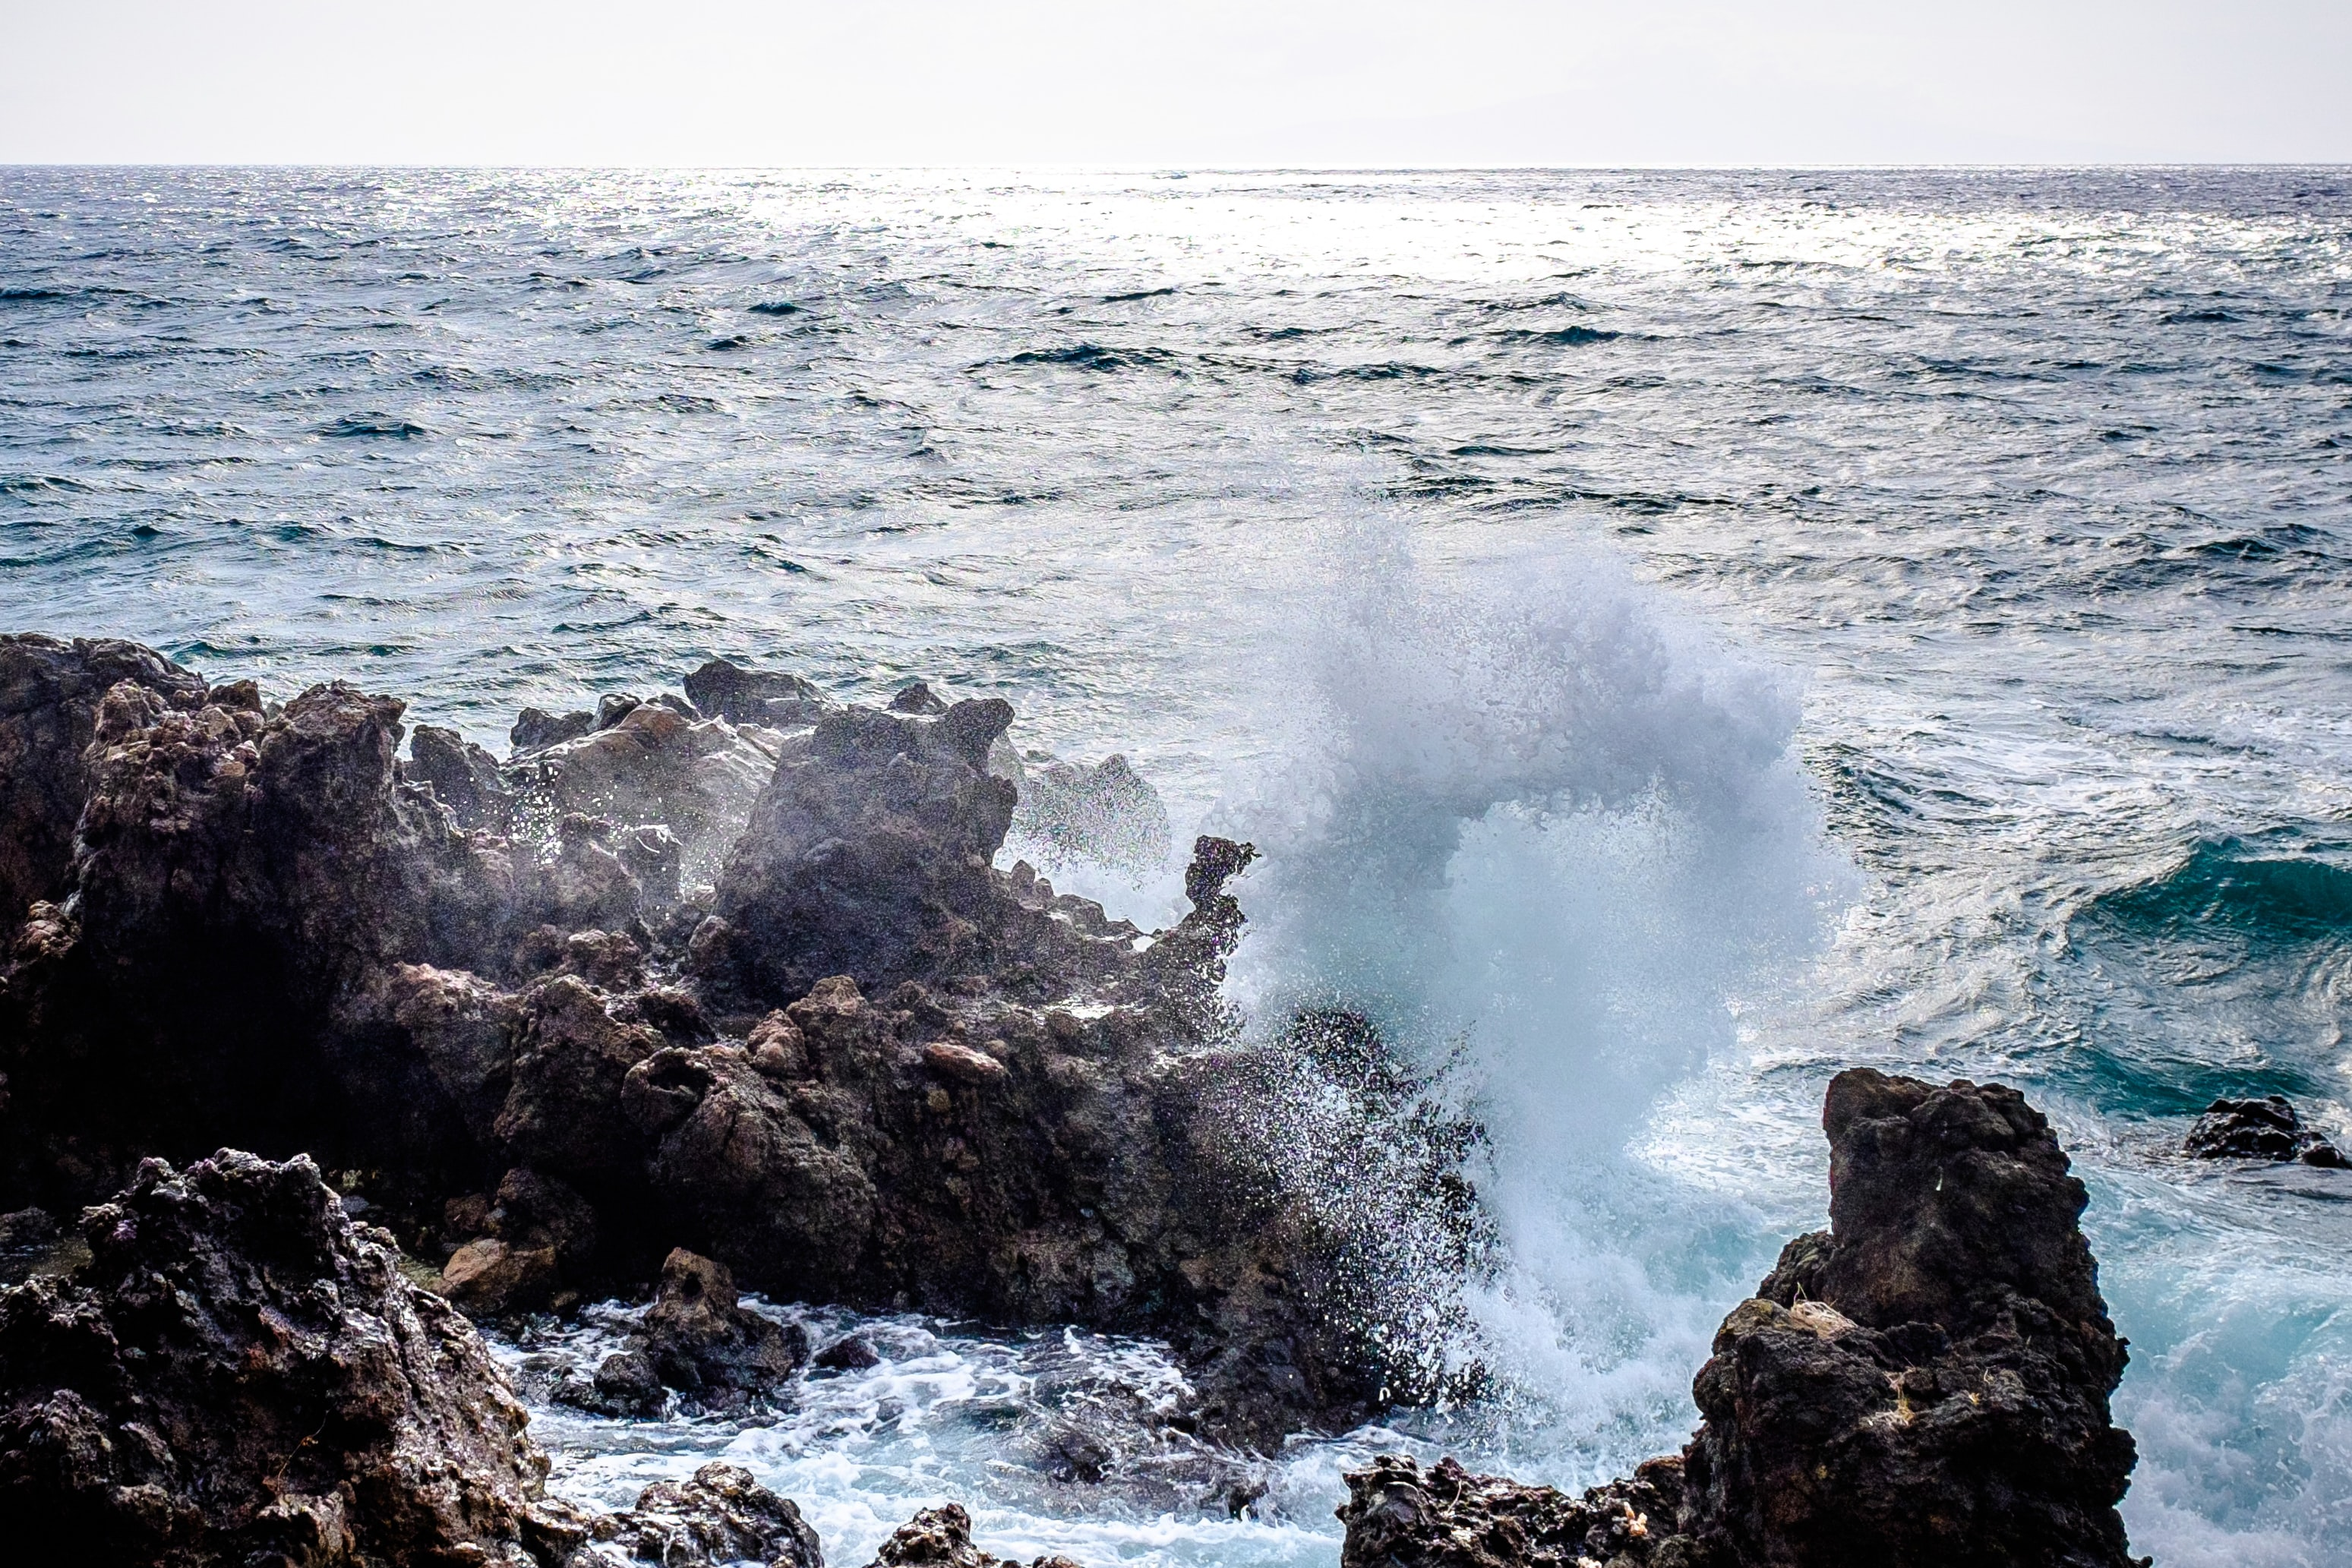 A wave breaking and splashing up onto rocks along the coast of Maui